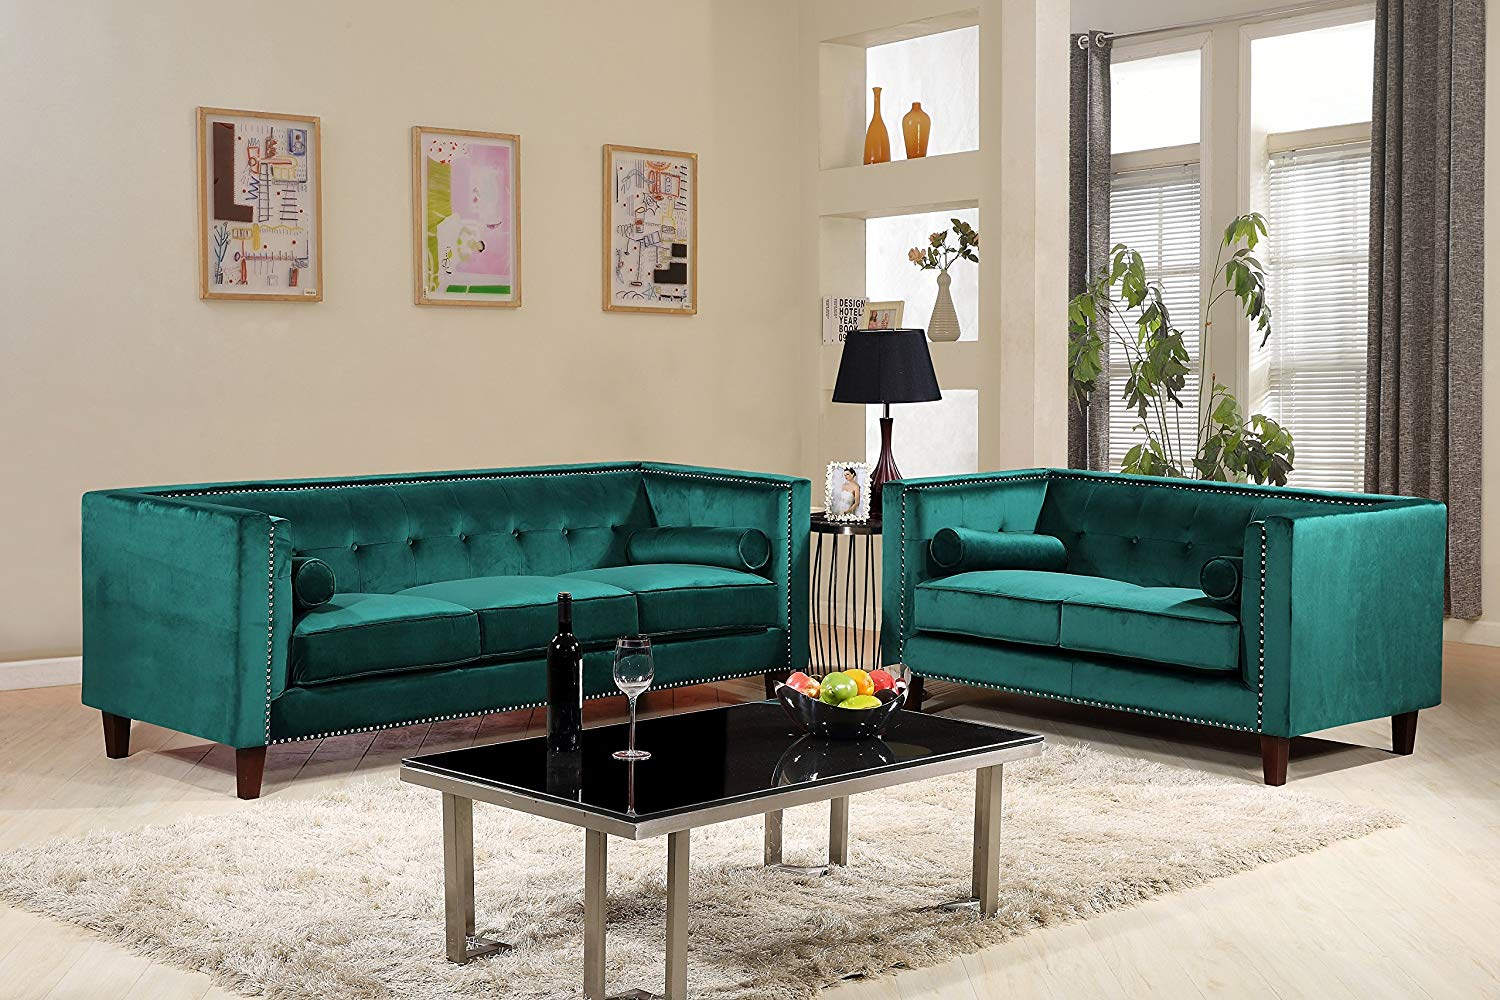 Pleasant 2Pc Kitts Velvet Upholstered Modern Chesterfield Sofa Set 78 Sofa And Loveseat Green Alphanode Cool Chair Designs And Ideas Alphanodeonline